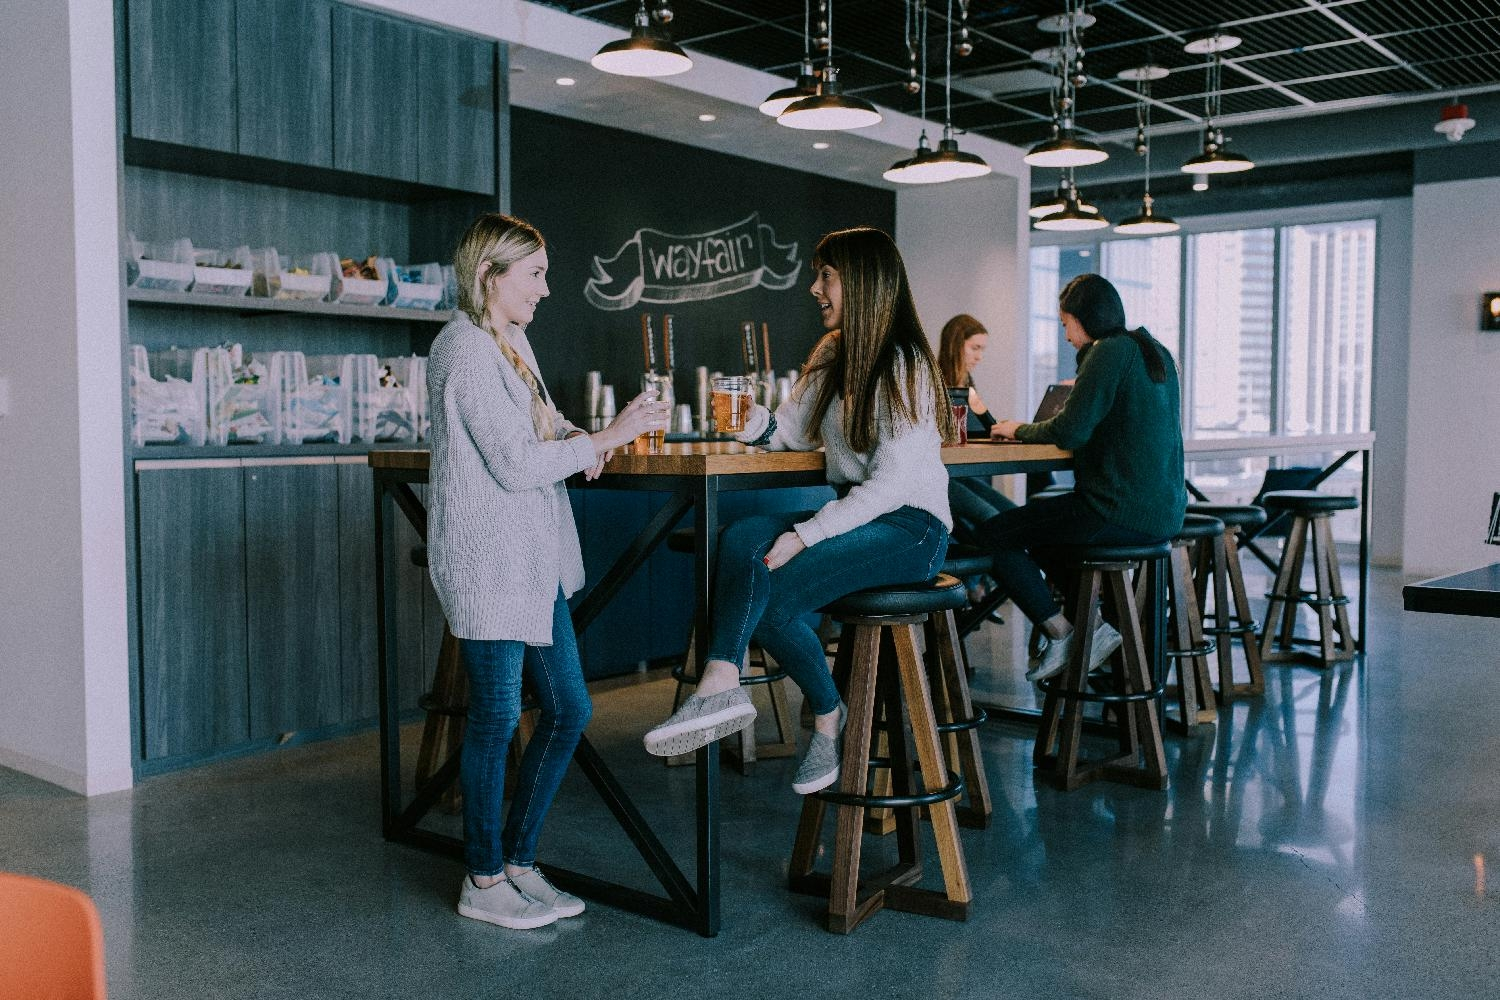 Wayfair - Great Place To Work United States